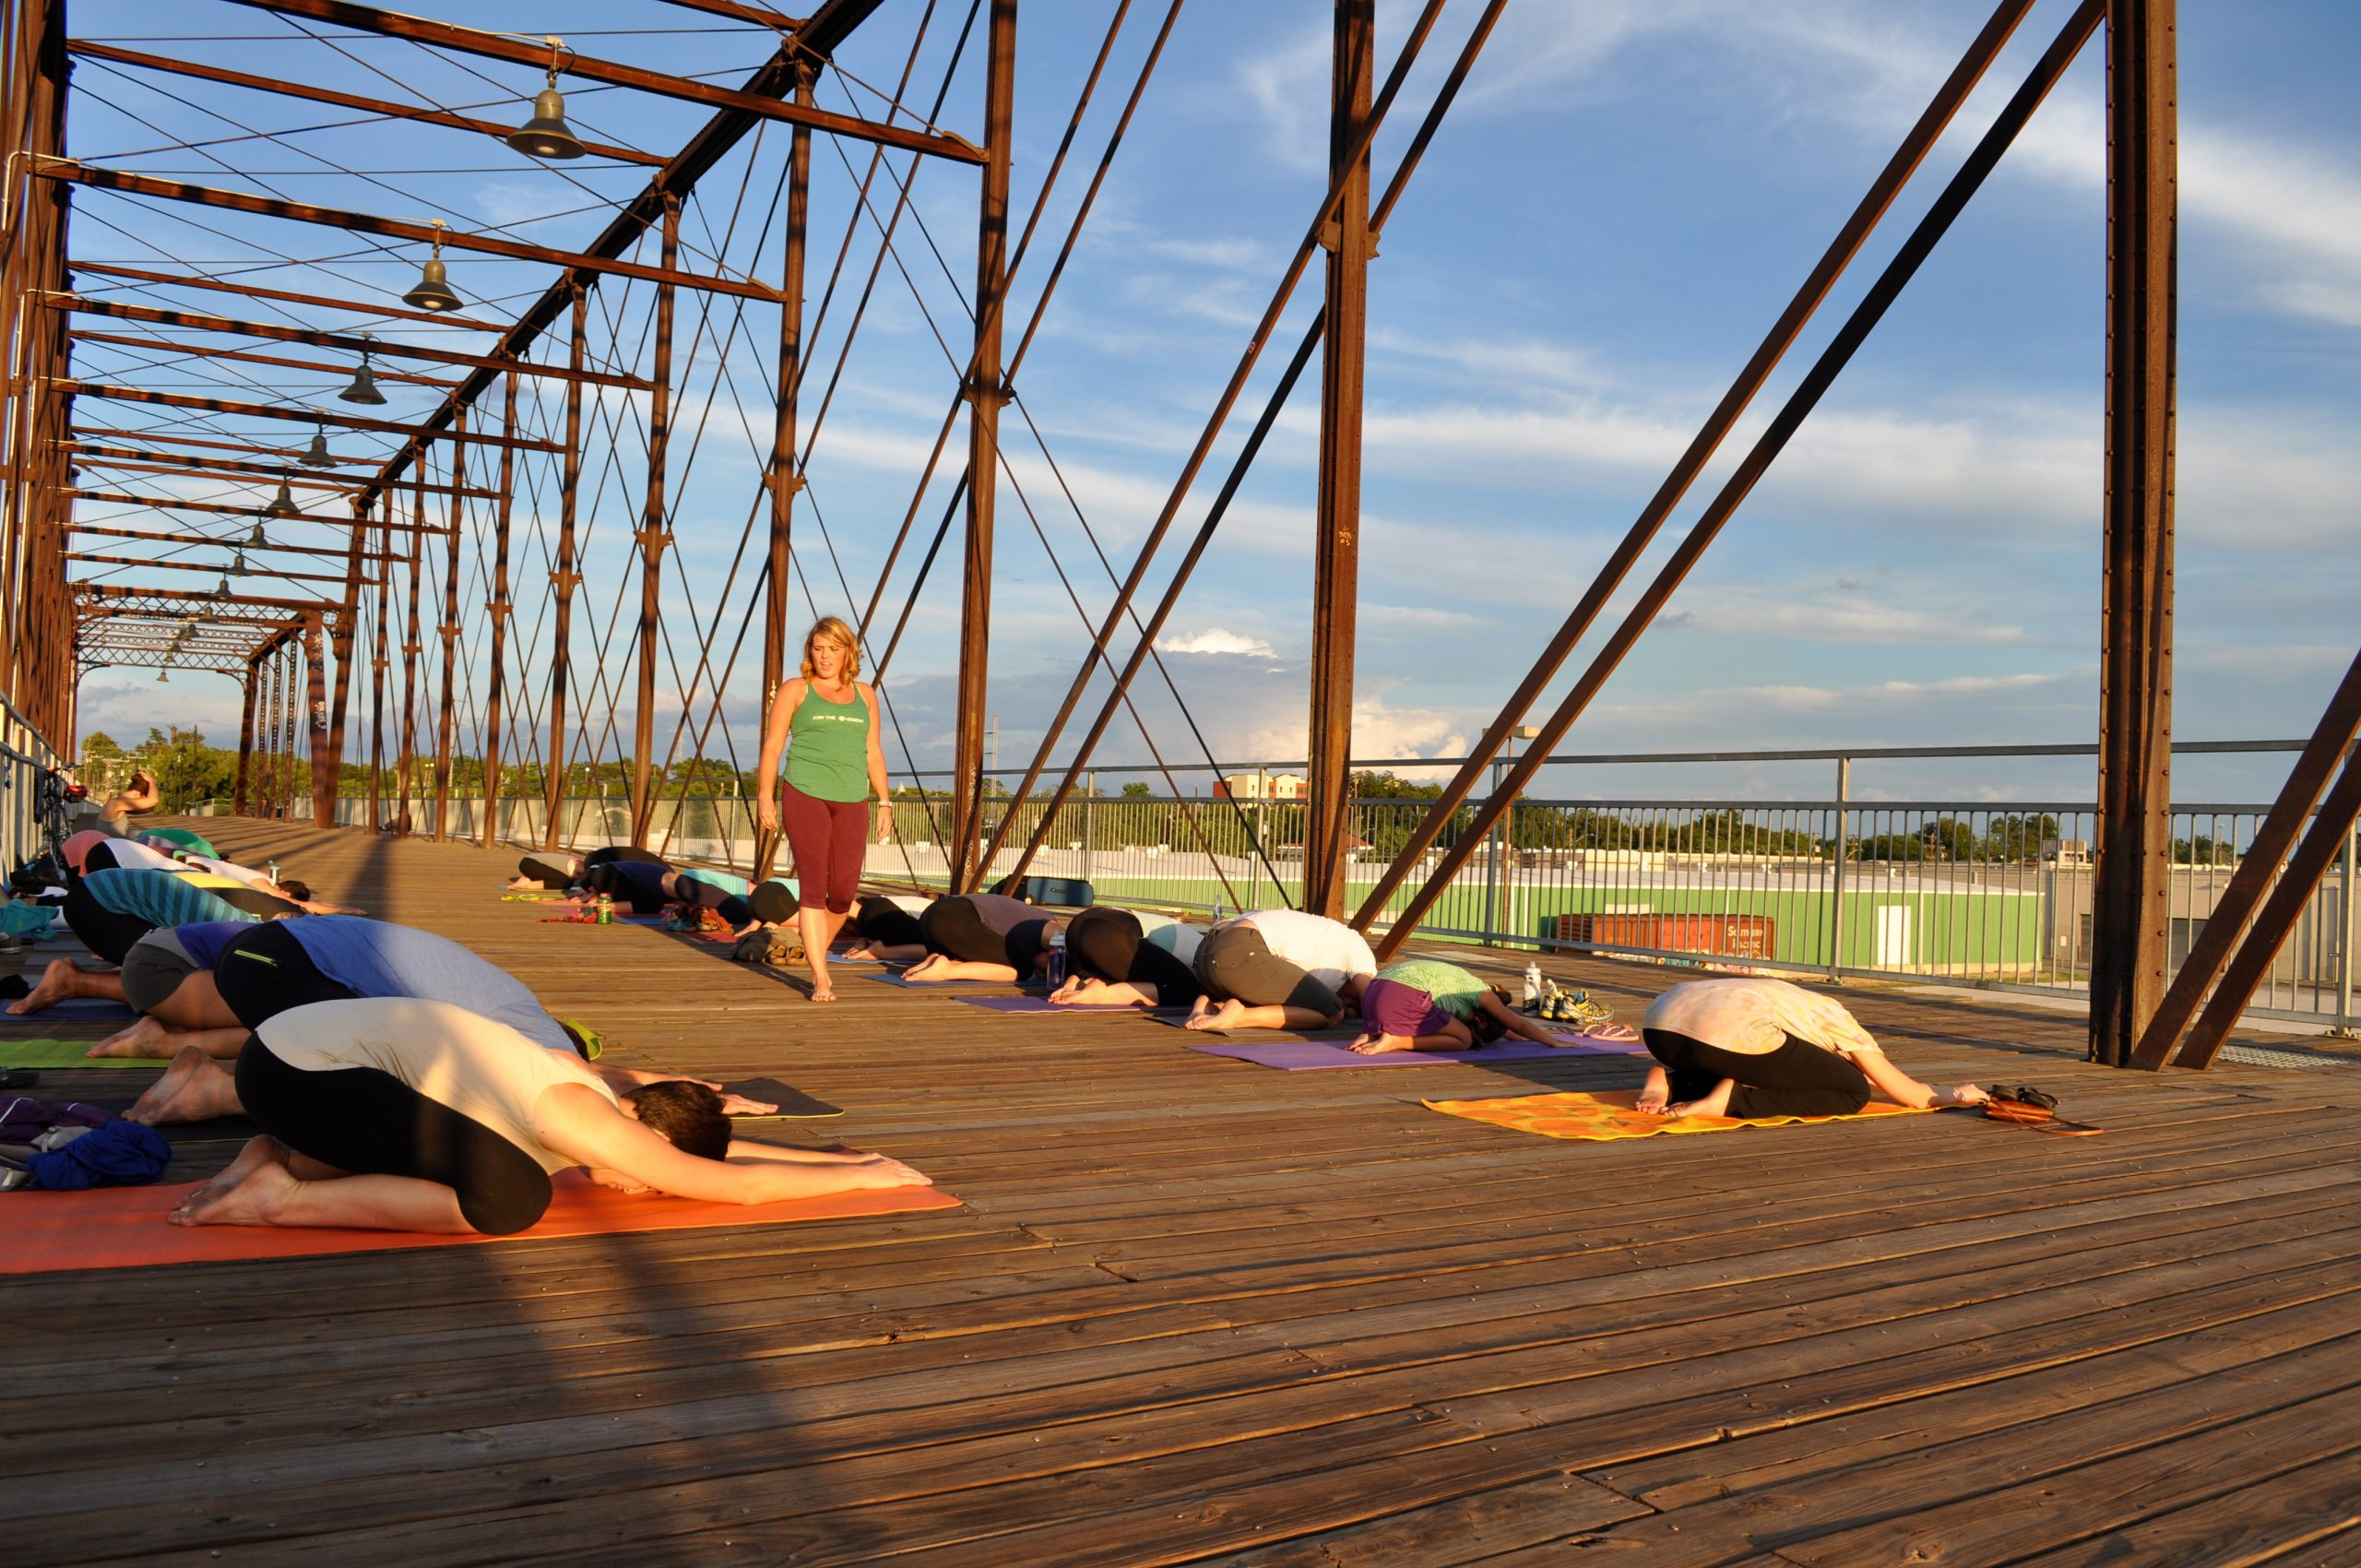 Cassandra Fauss guides yoga students during a recent session on the Hays Street Bridge. Photo by Iris Dimmick.